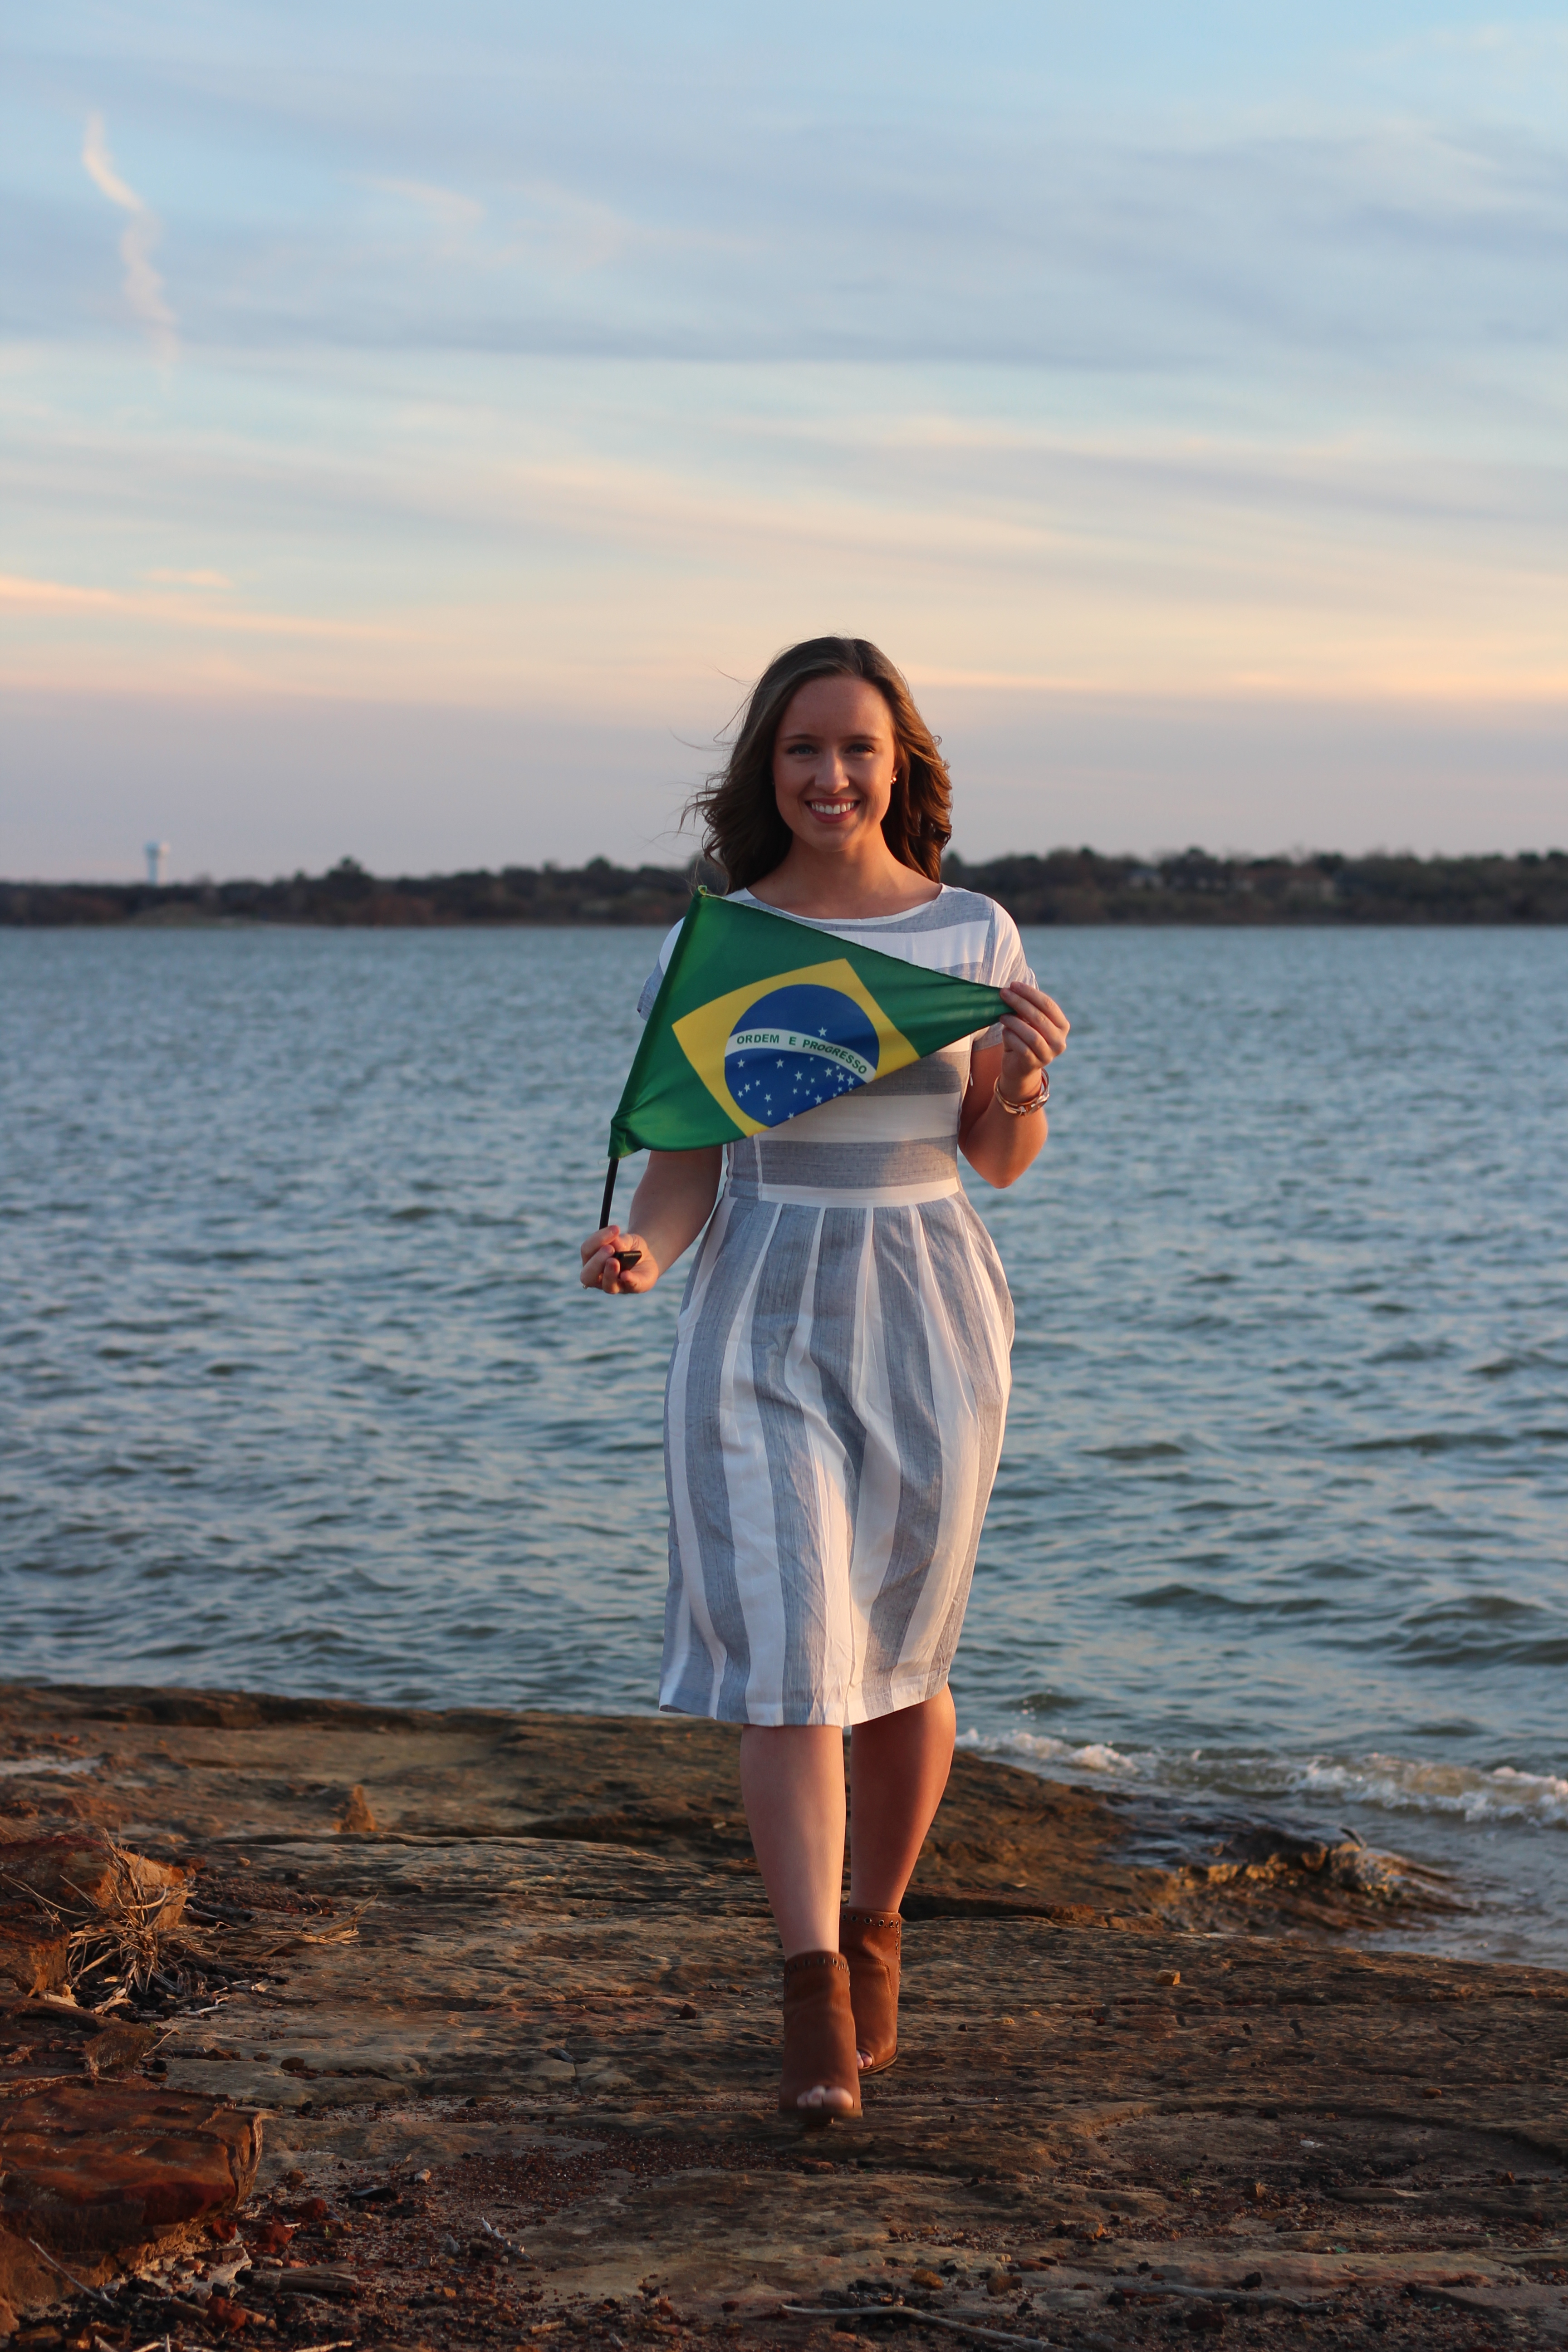 Monique McDown before serving her mission in Curitiba, Brazil.